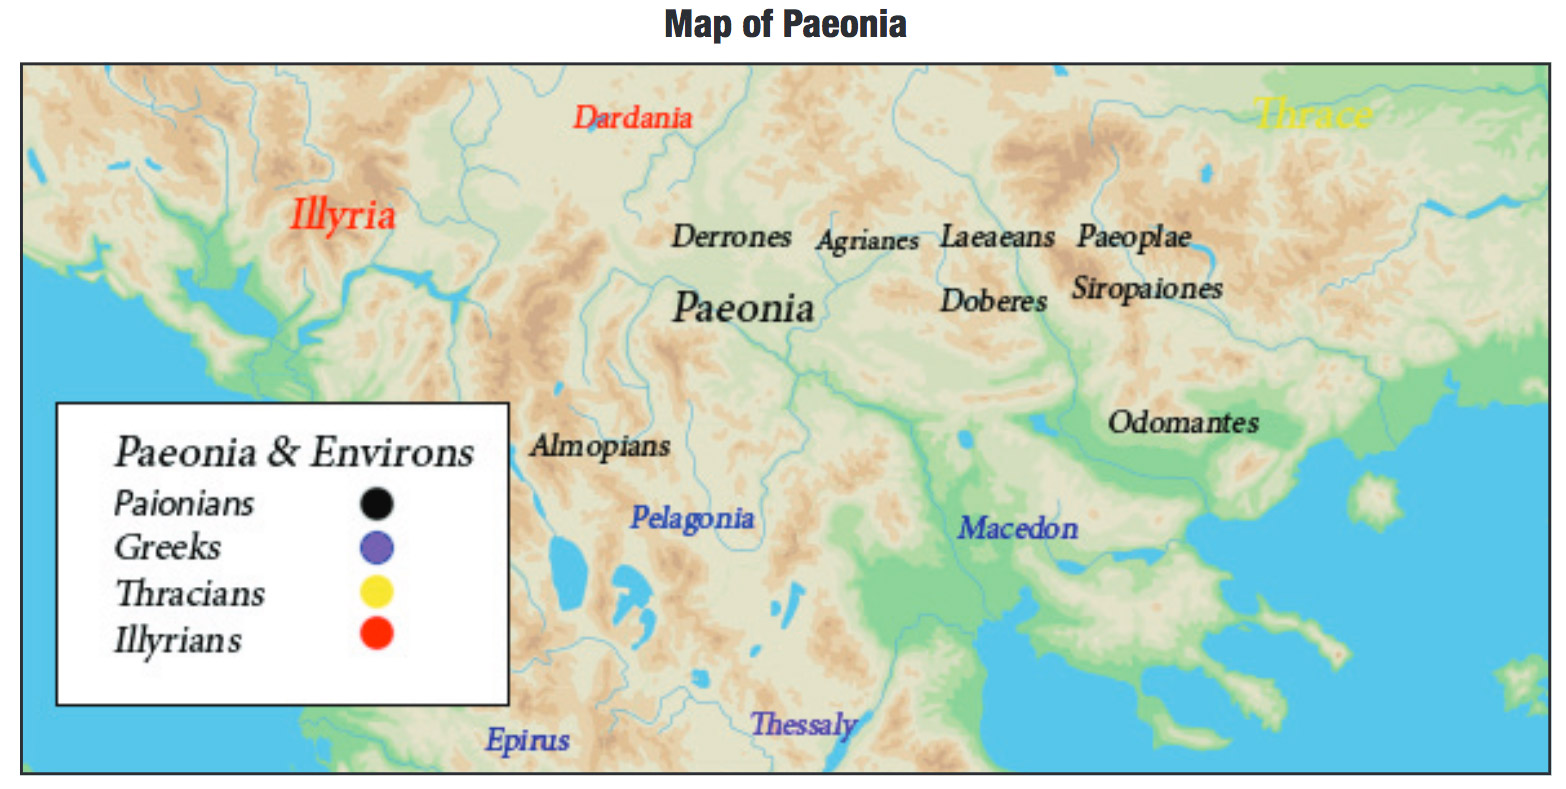 Map of Paeonia